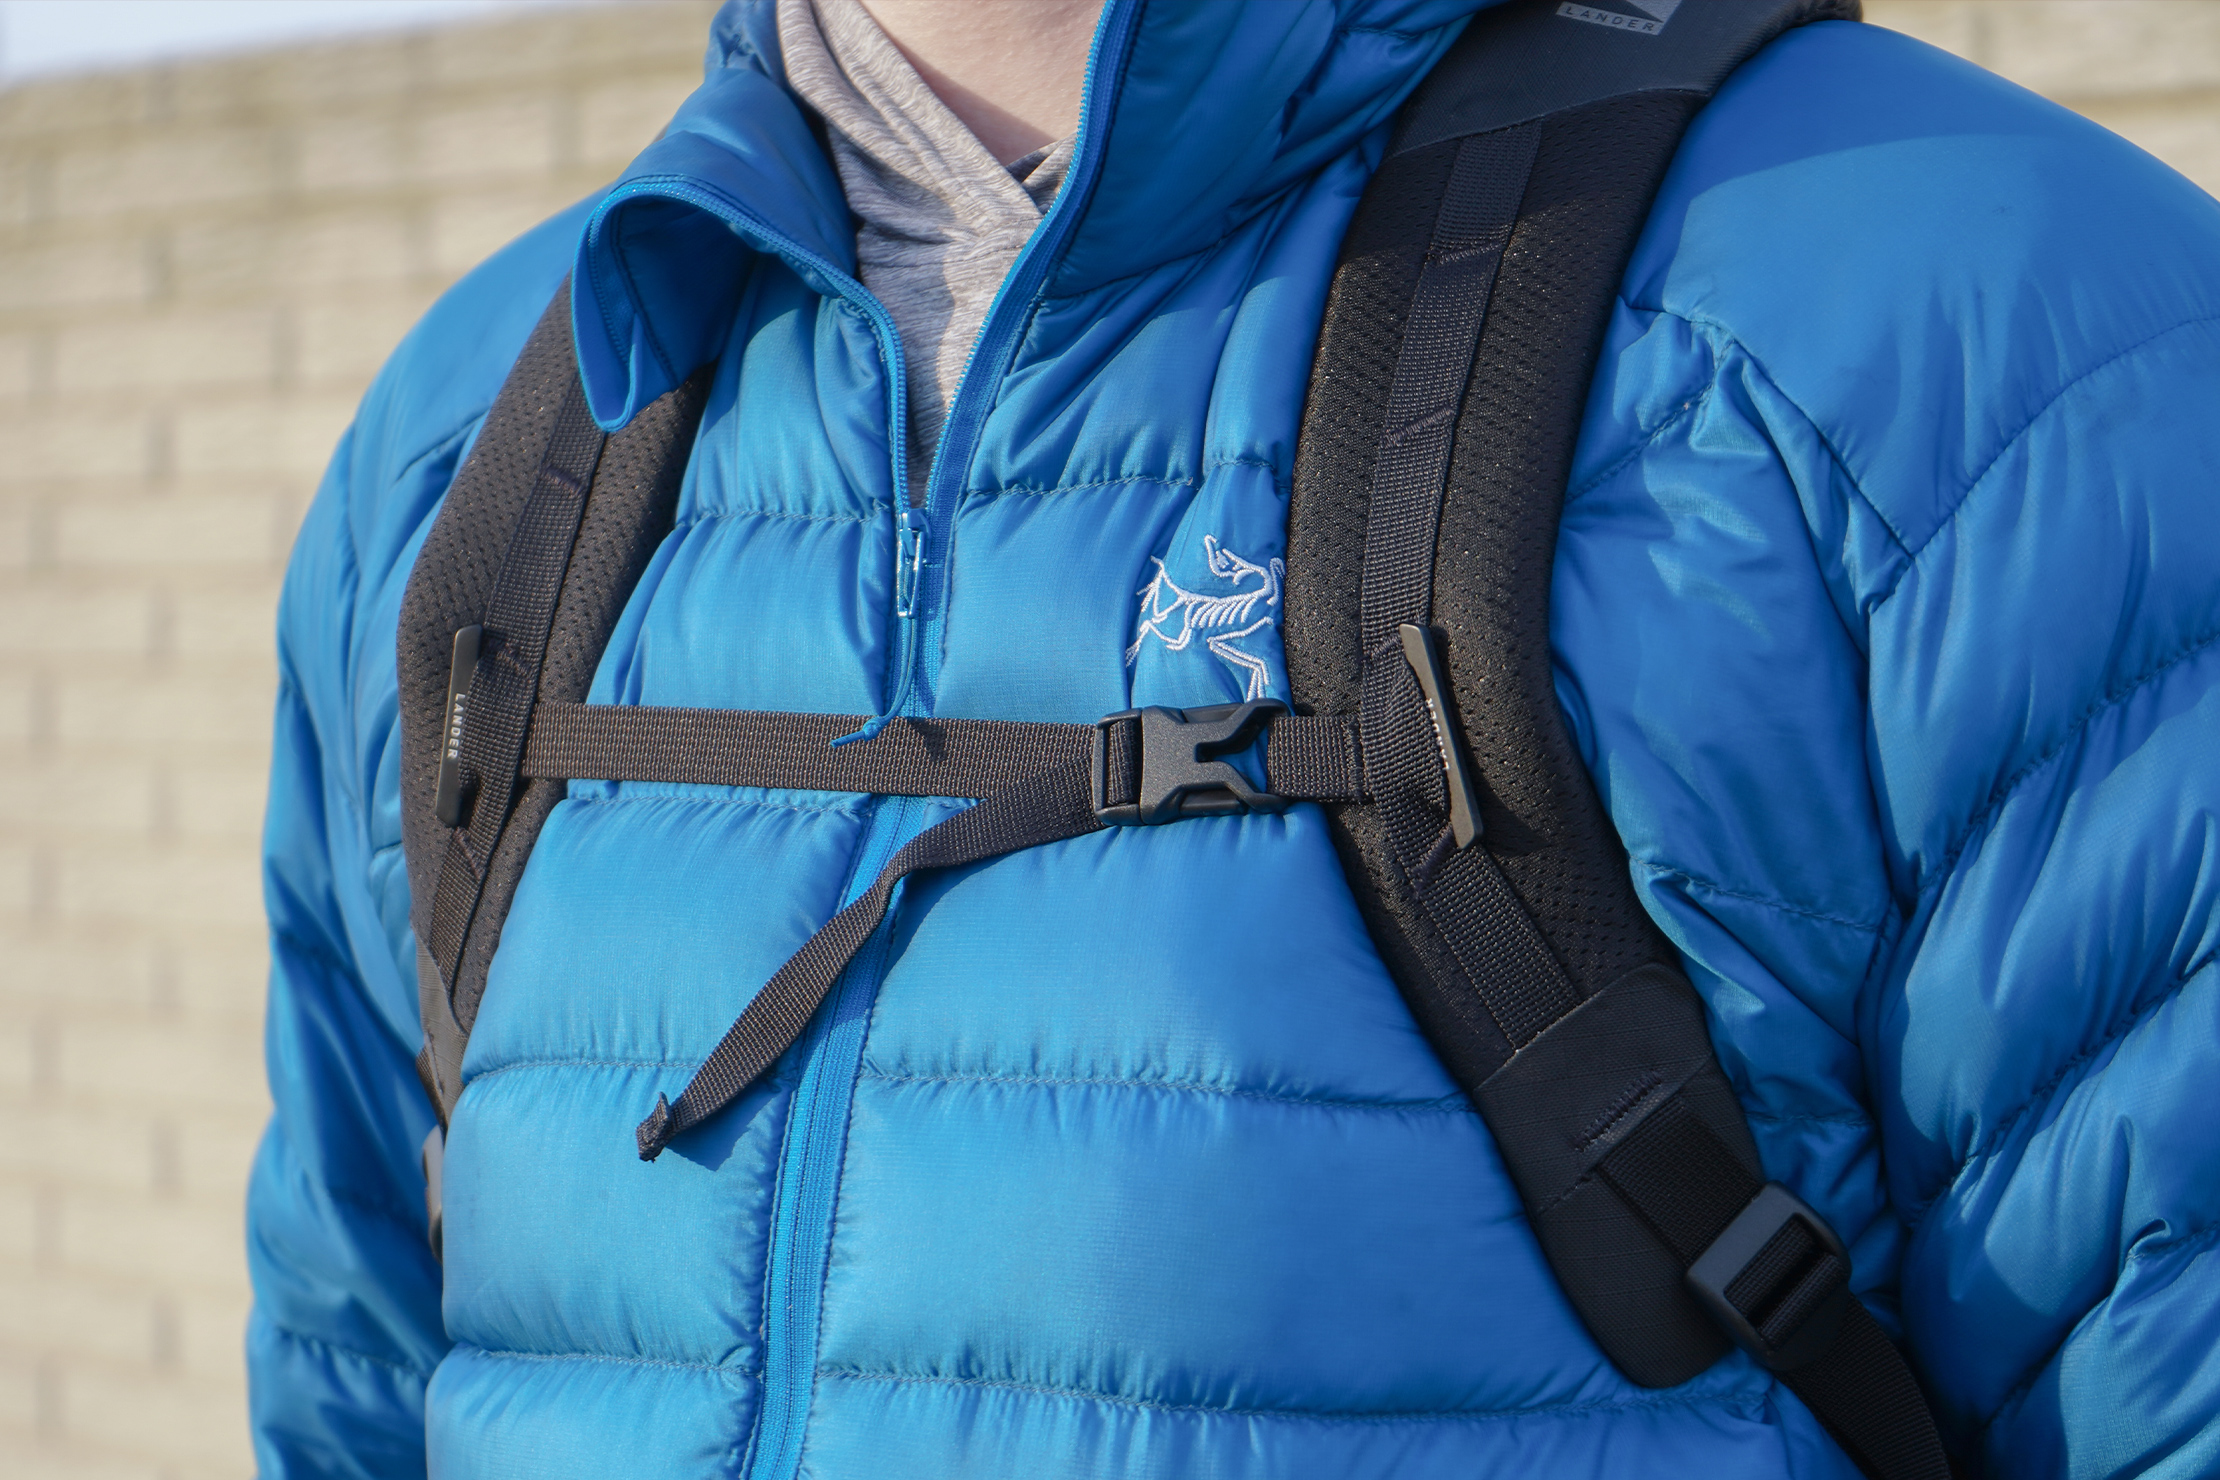 Lander Commuter Backpack 25L | The sternum strap's anchor can come loose